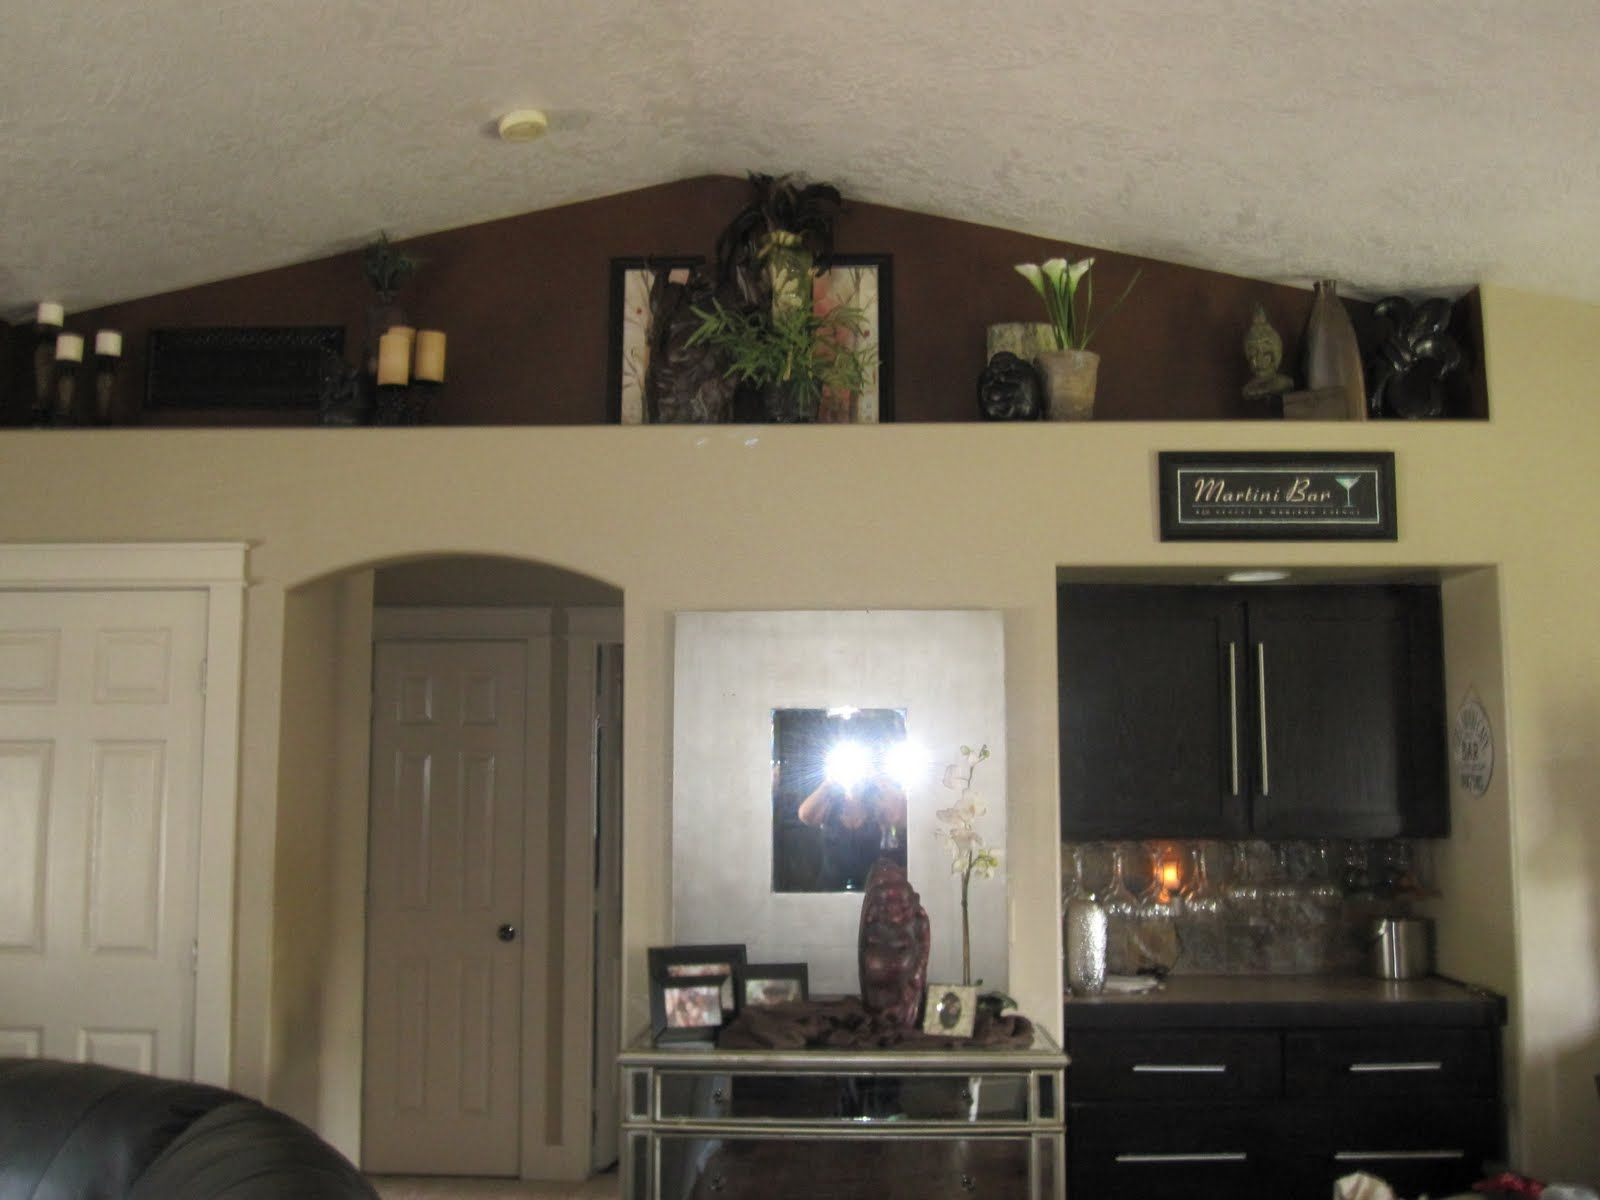 Vaulted ceilings with shelf ideas plant shelves on the - How to decorate shelves in living room ...